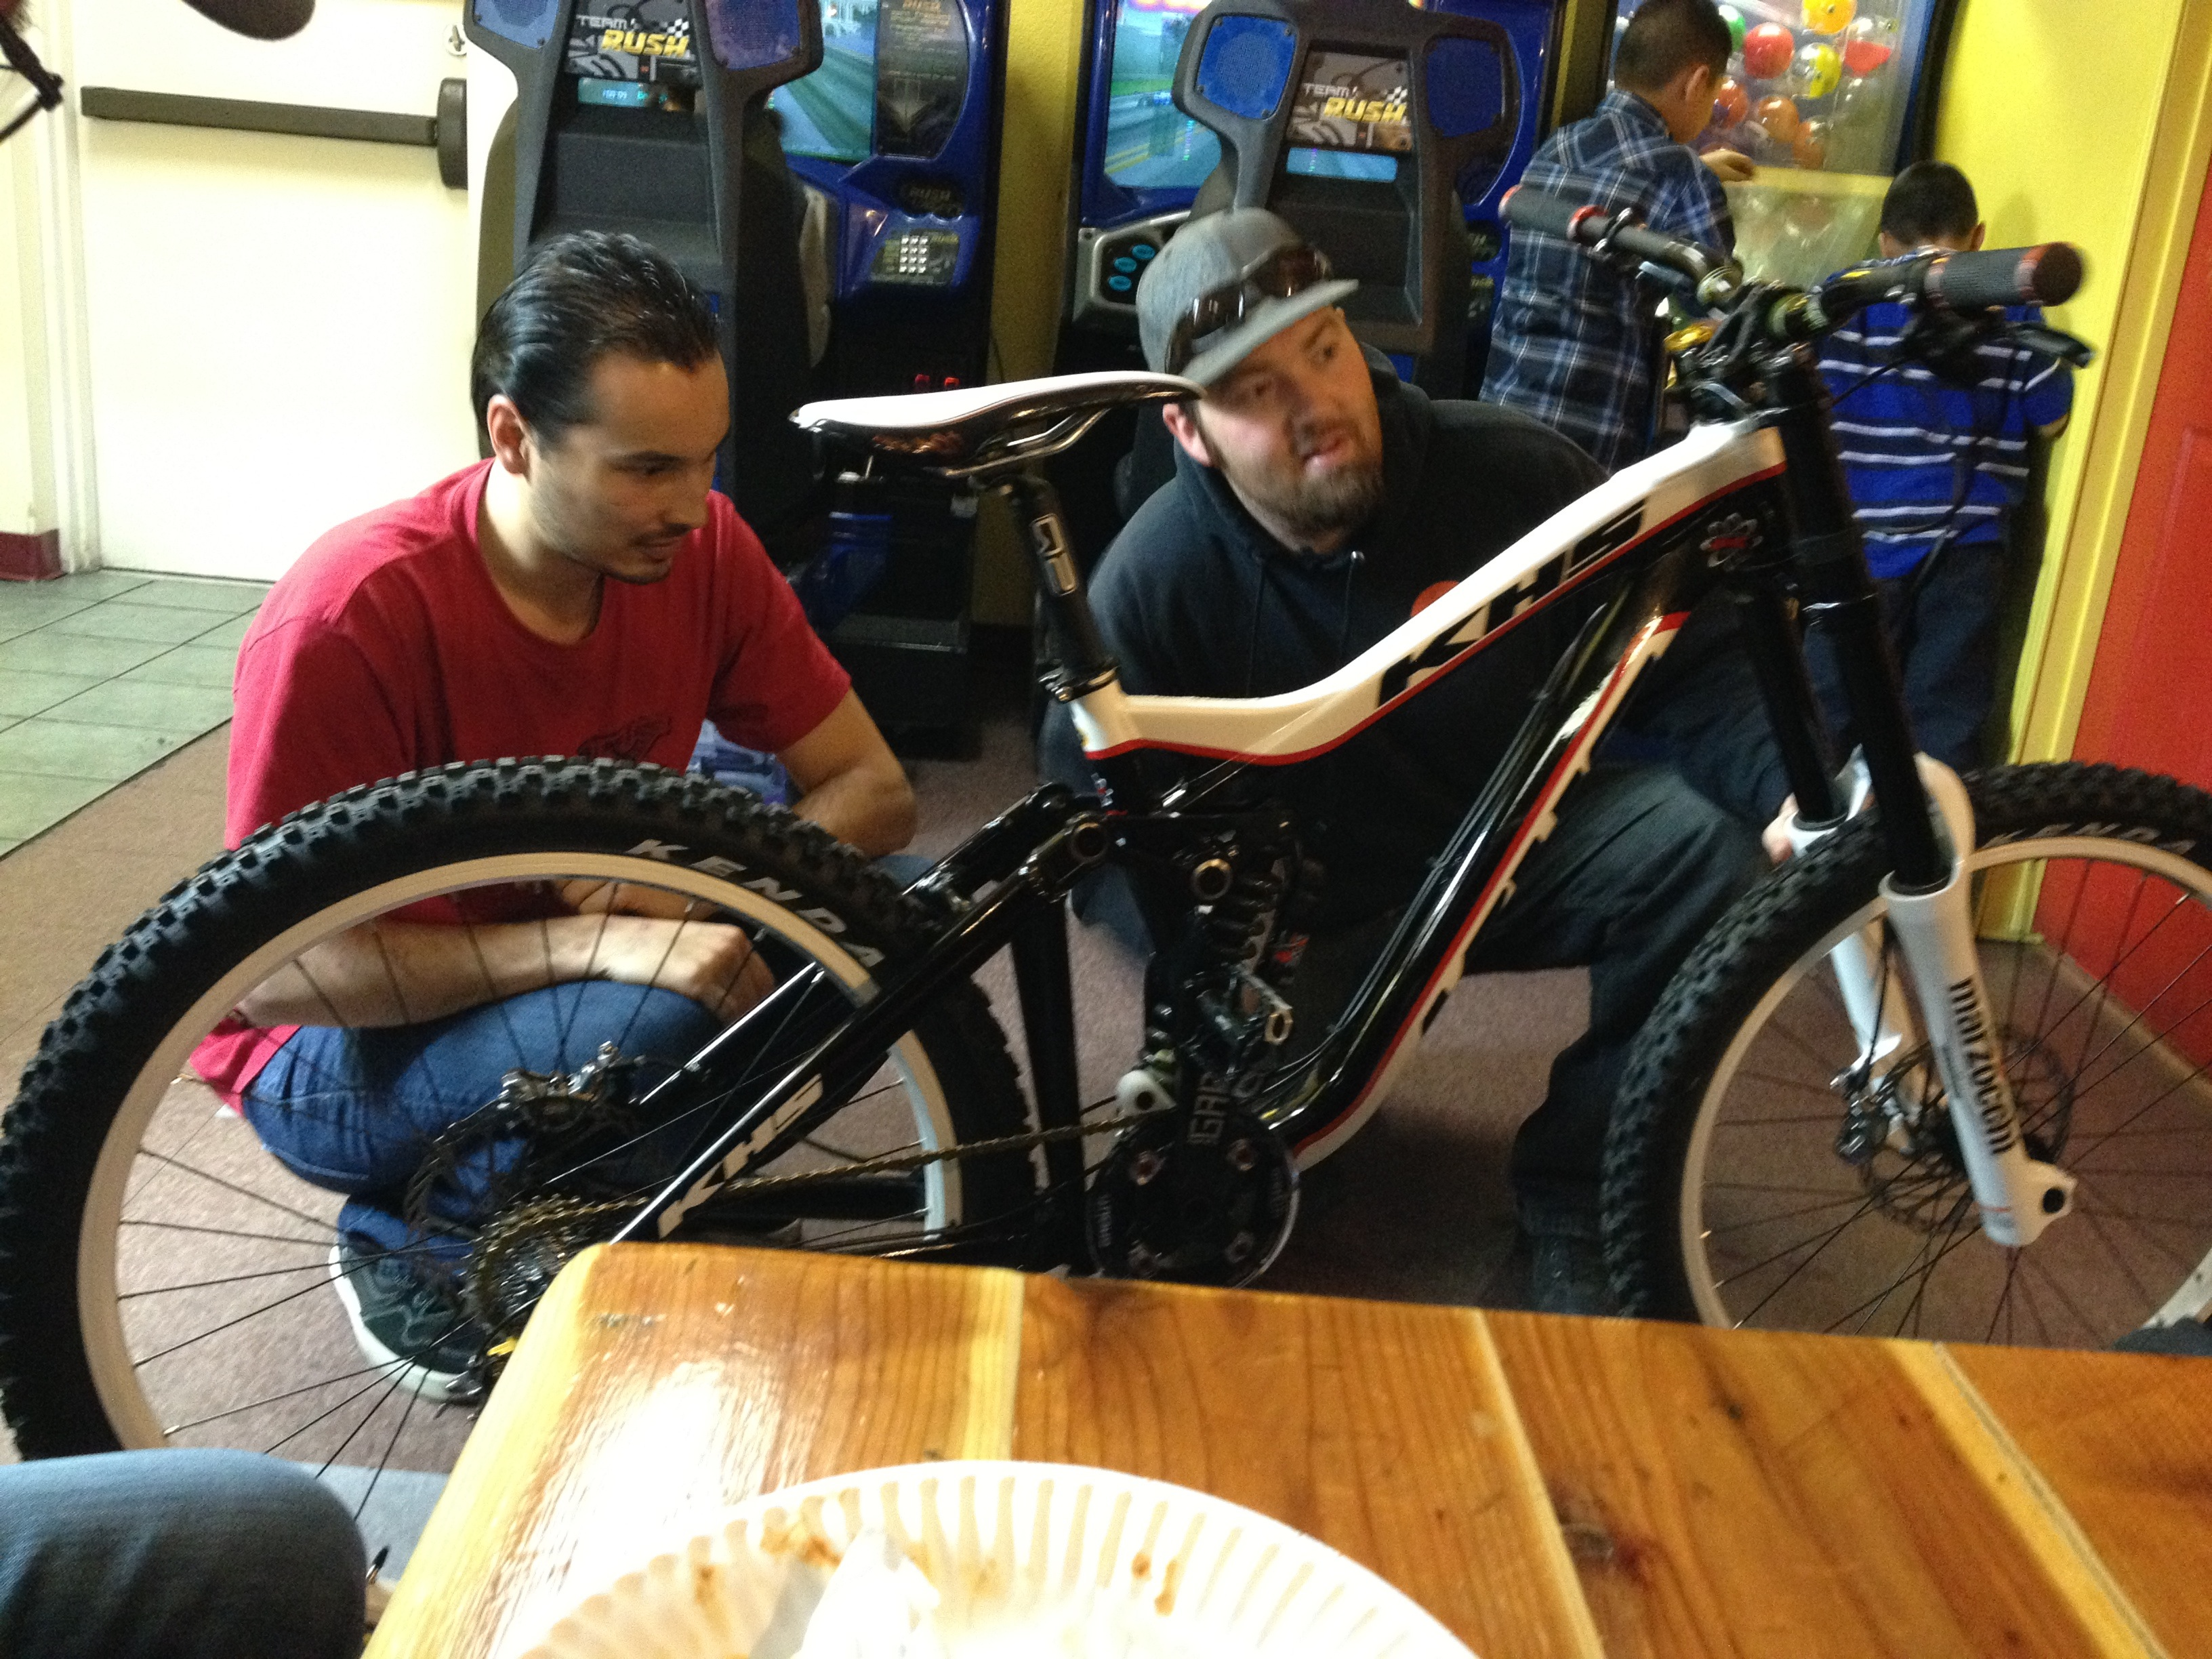 Black Rock Bikes Reno Nv point Black Rock Bikes is